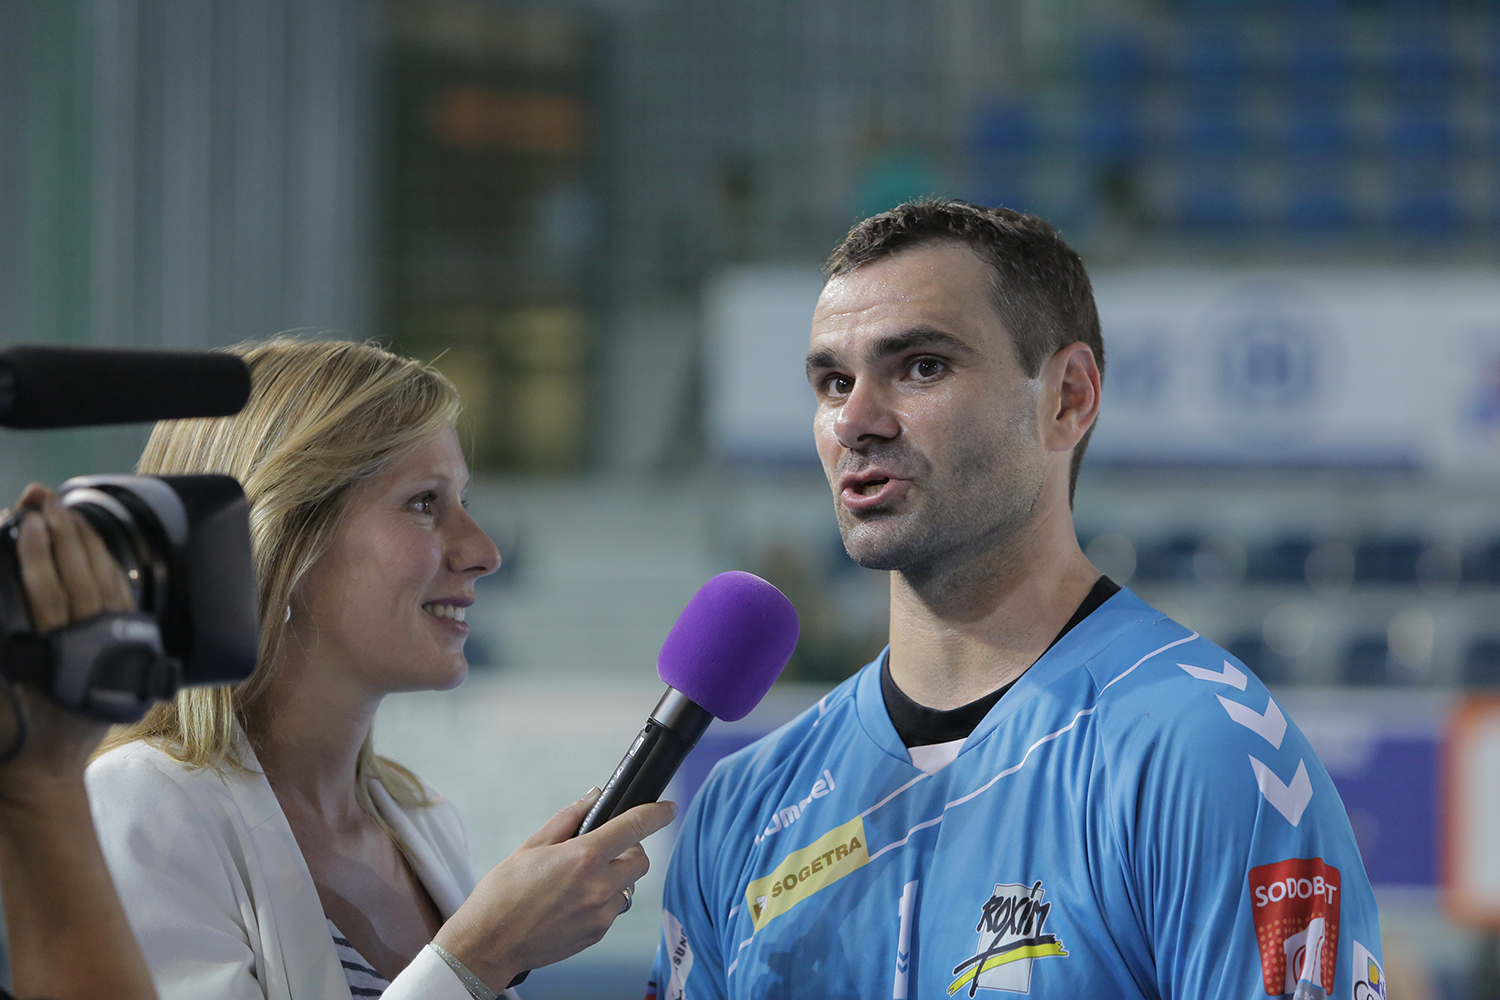 Slavisa Djukanovic | Handball Goalkeeper SRVHB by ML Terrier le 18 septembre 2014